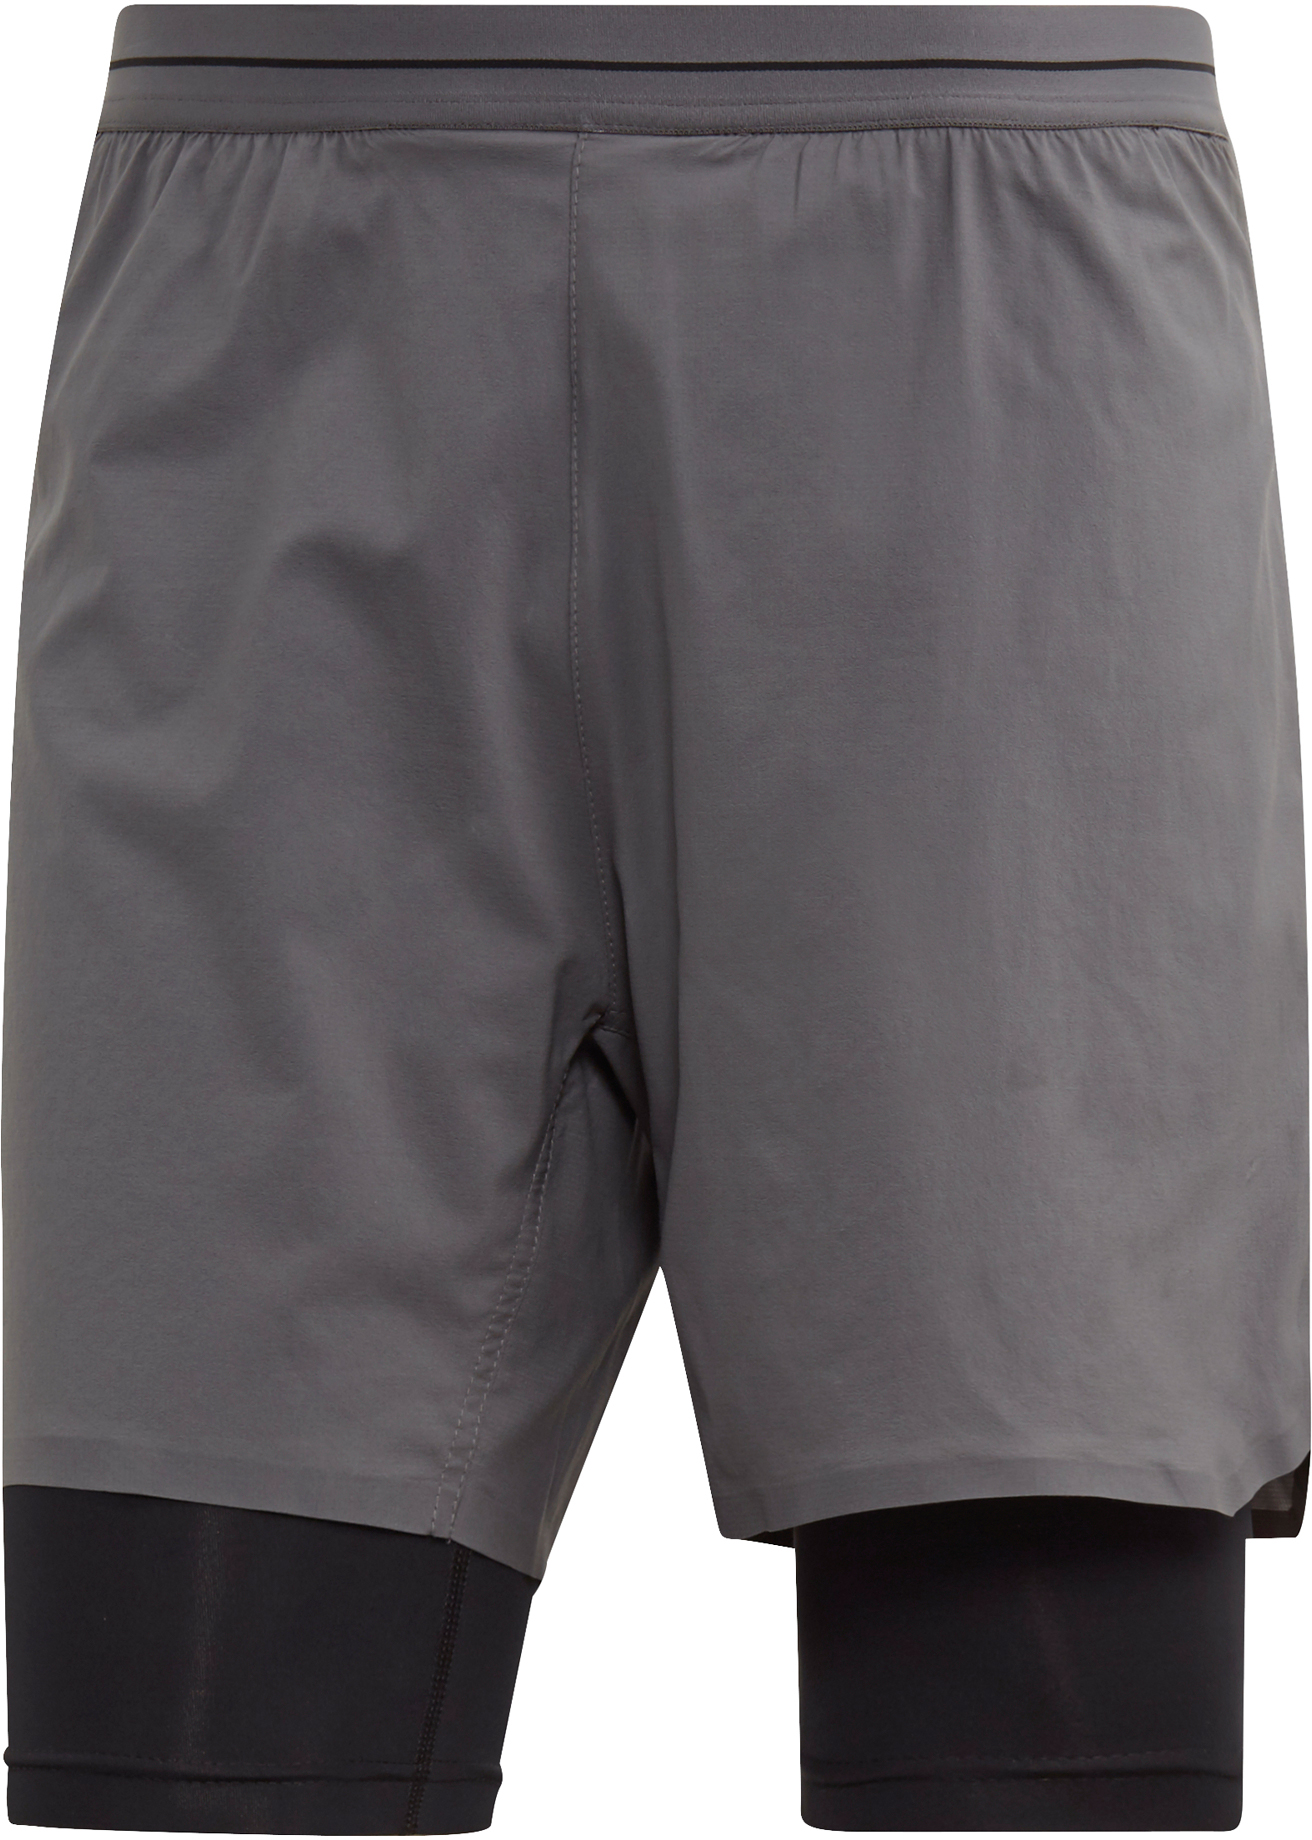 adidas Terrex Agravic 2in1 Shorts | Trousers